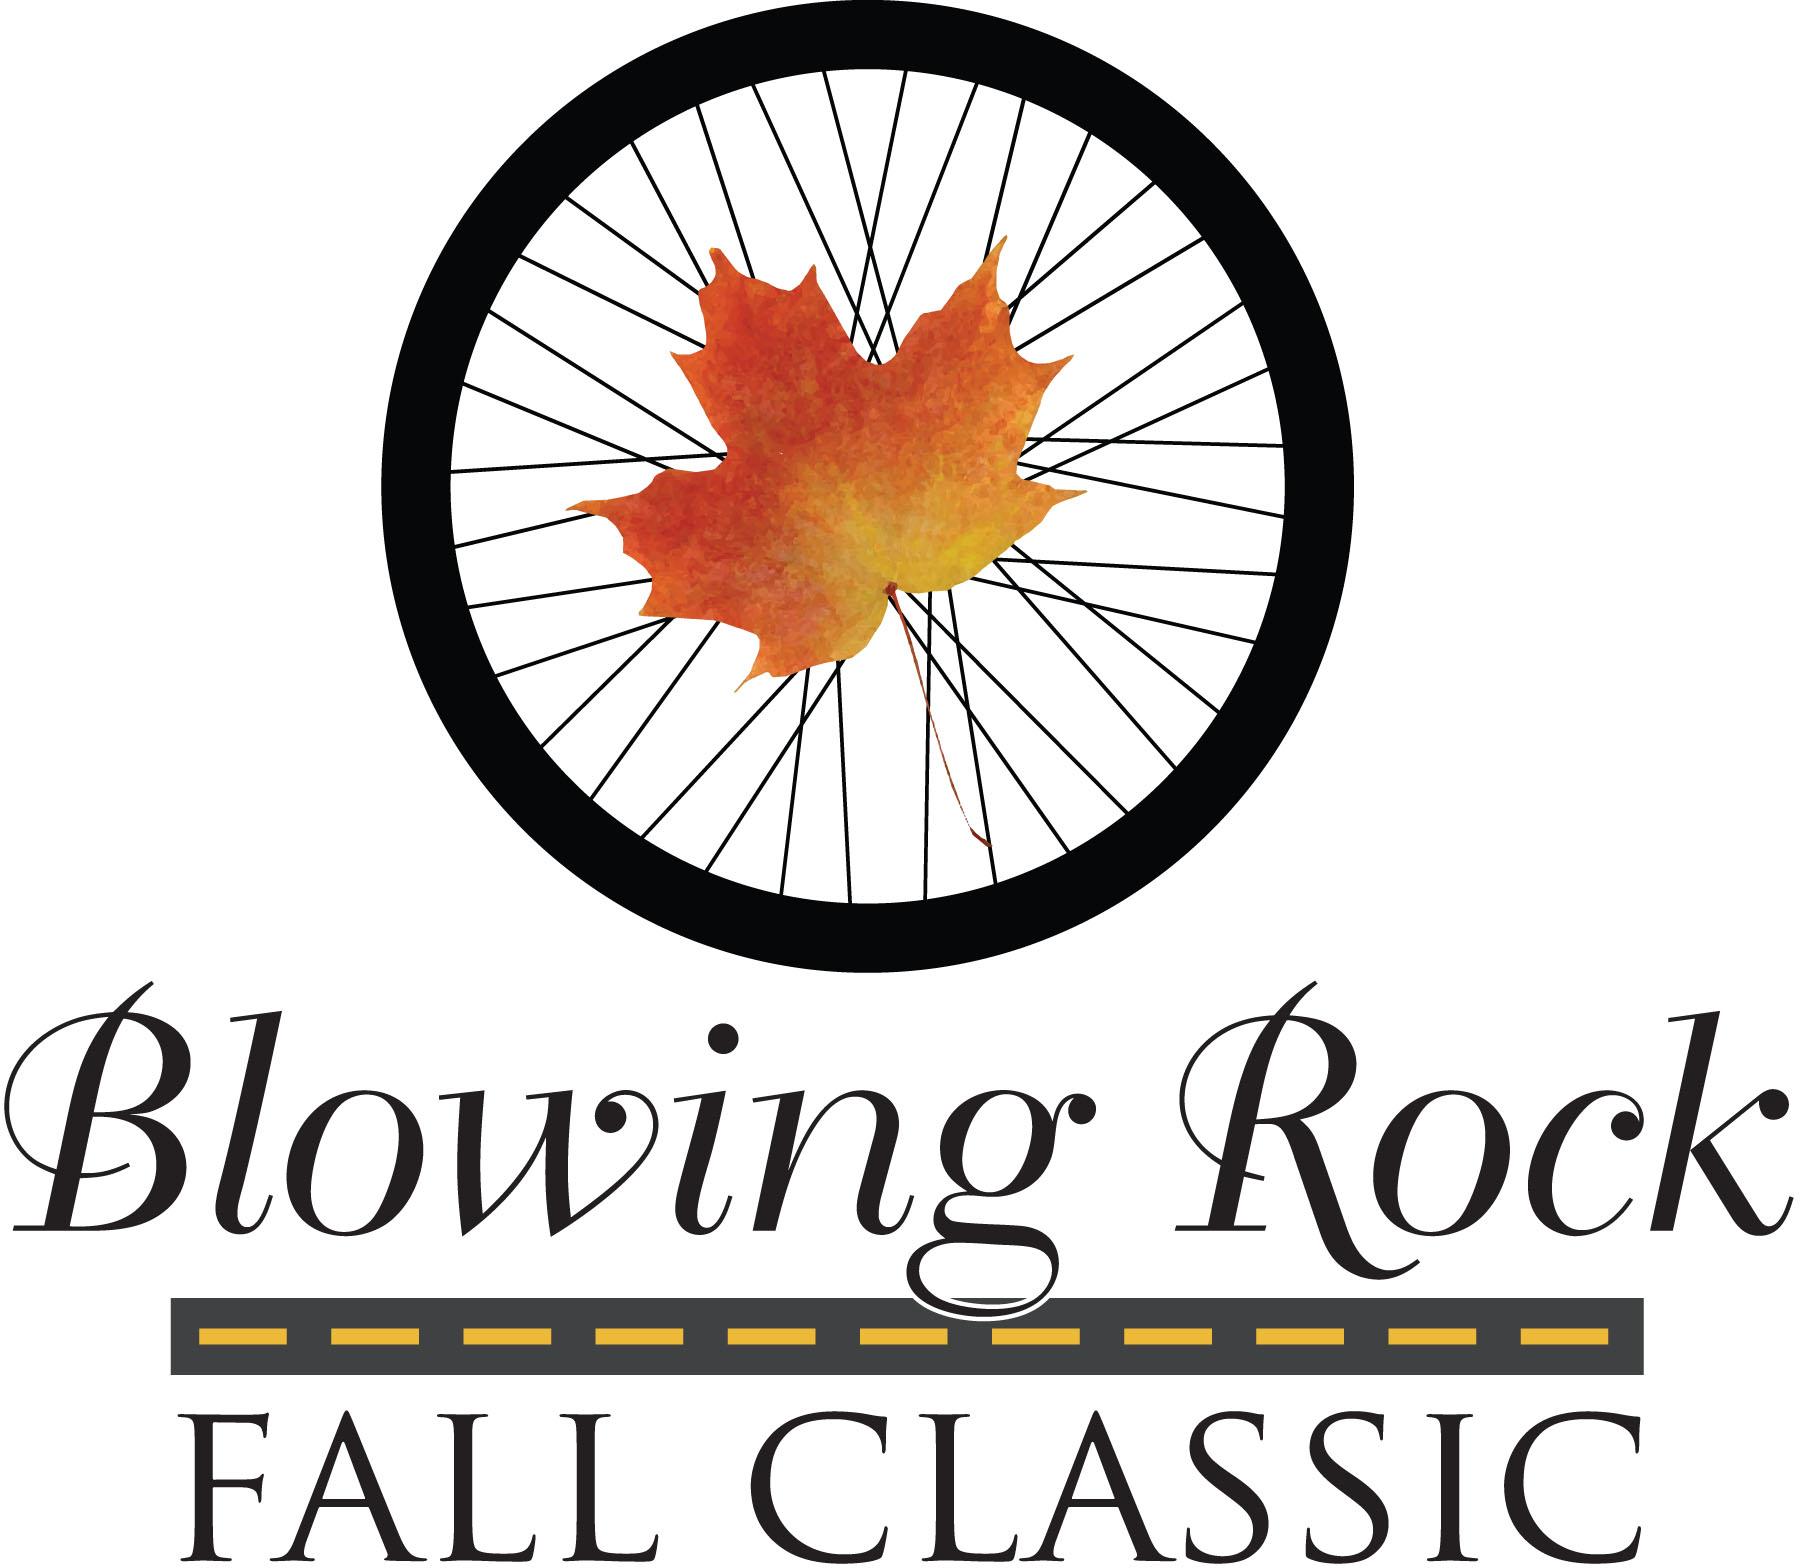 Blowing Rock Fall Classic - Blowing Rock, North Carolina